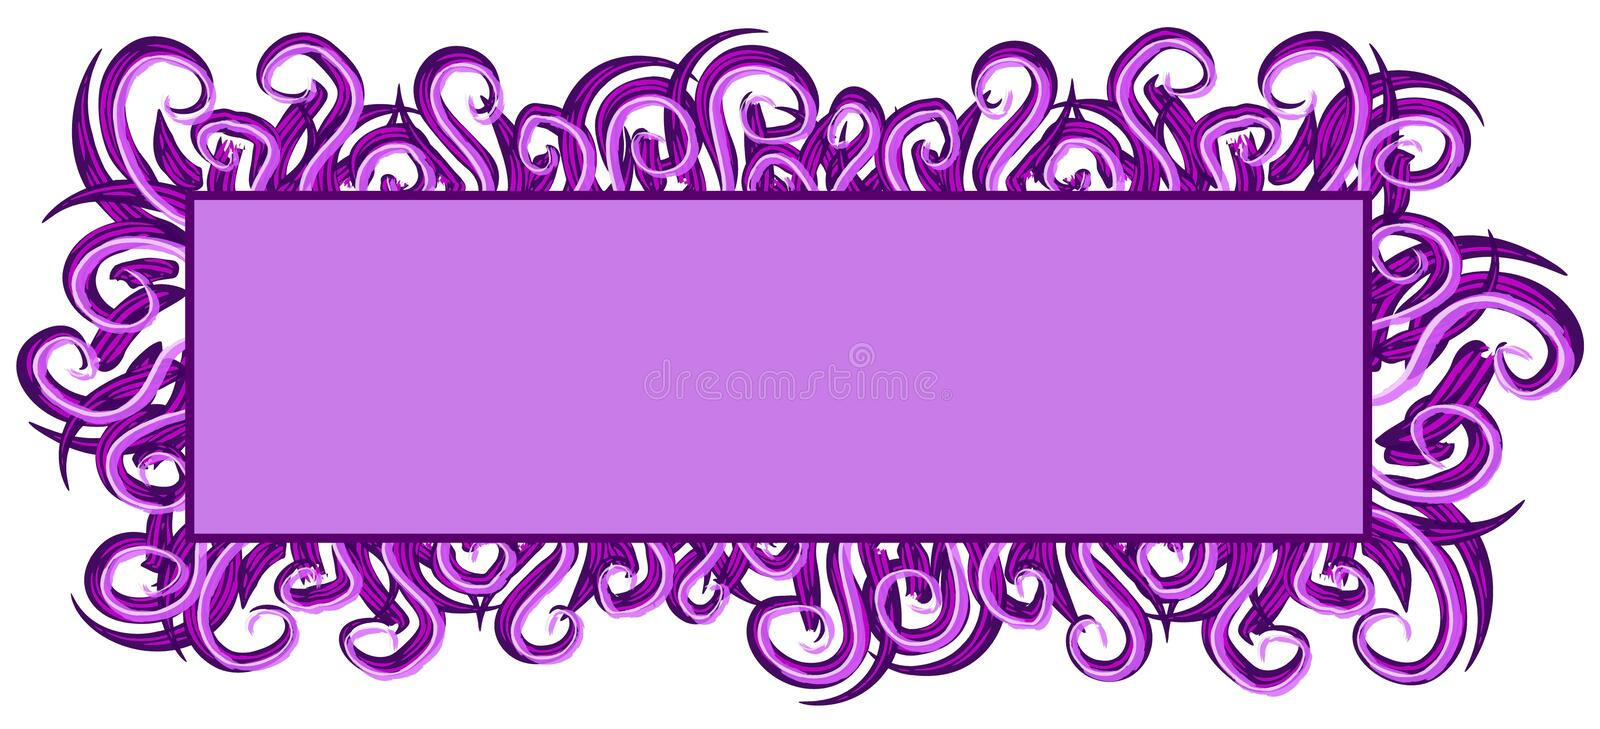 Web Page Logo Purple Swirls stock illustration